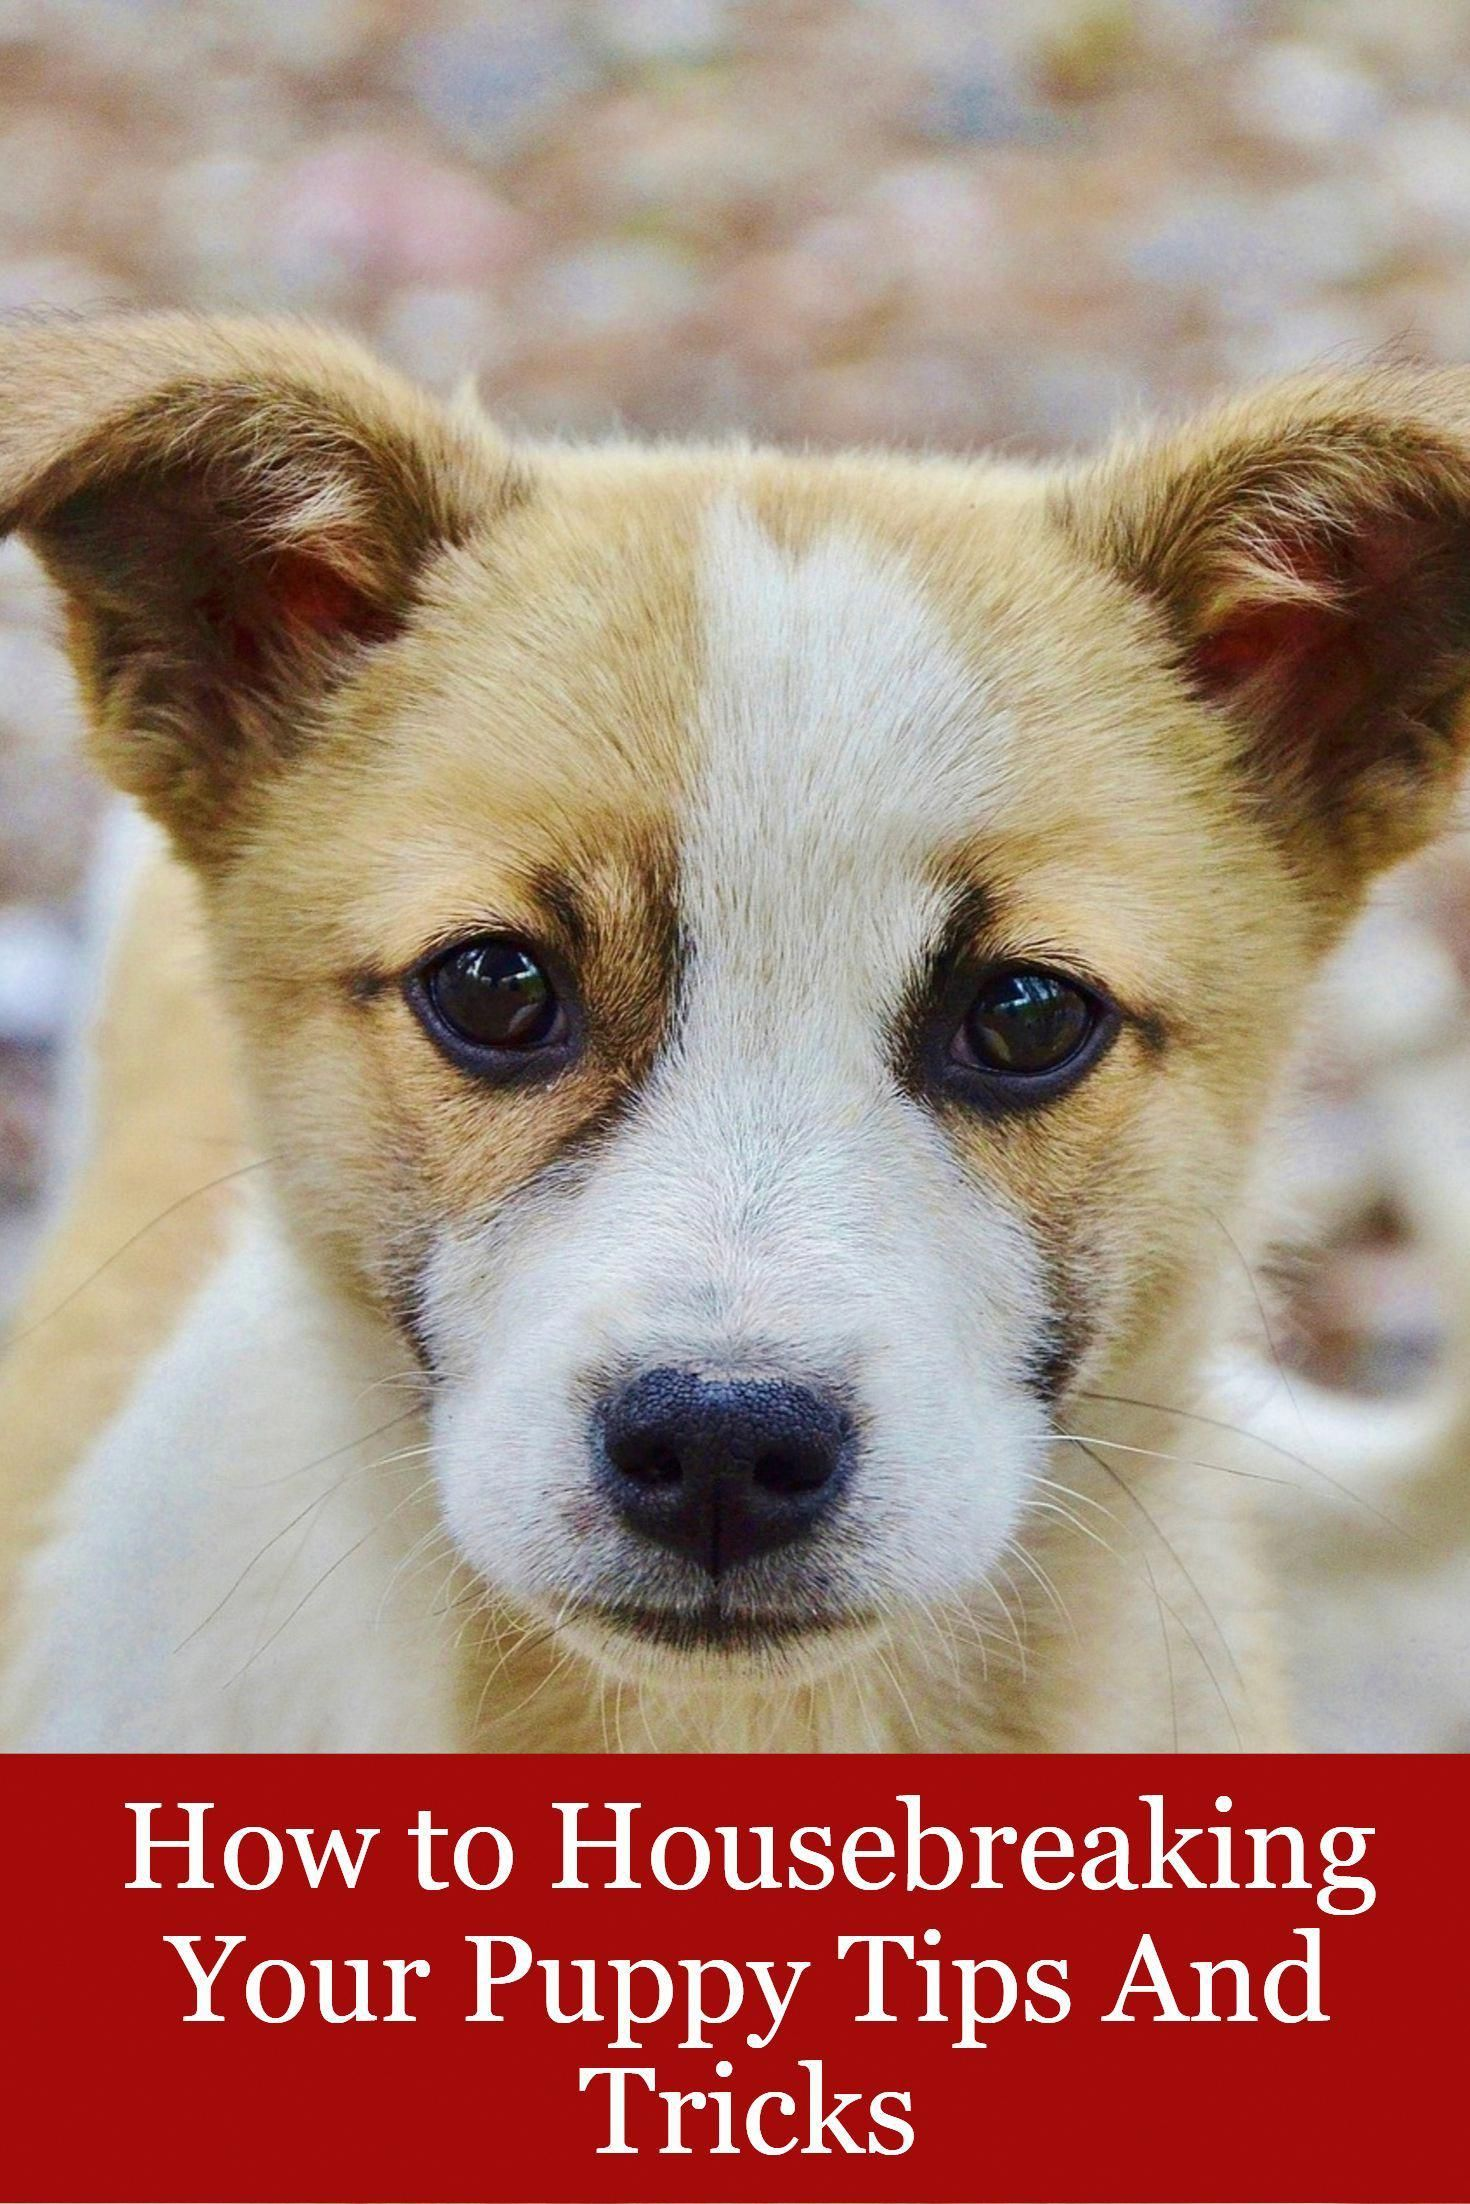 How To Housebreaking Your Puppy Tips And Tricks Housebreaking